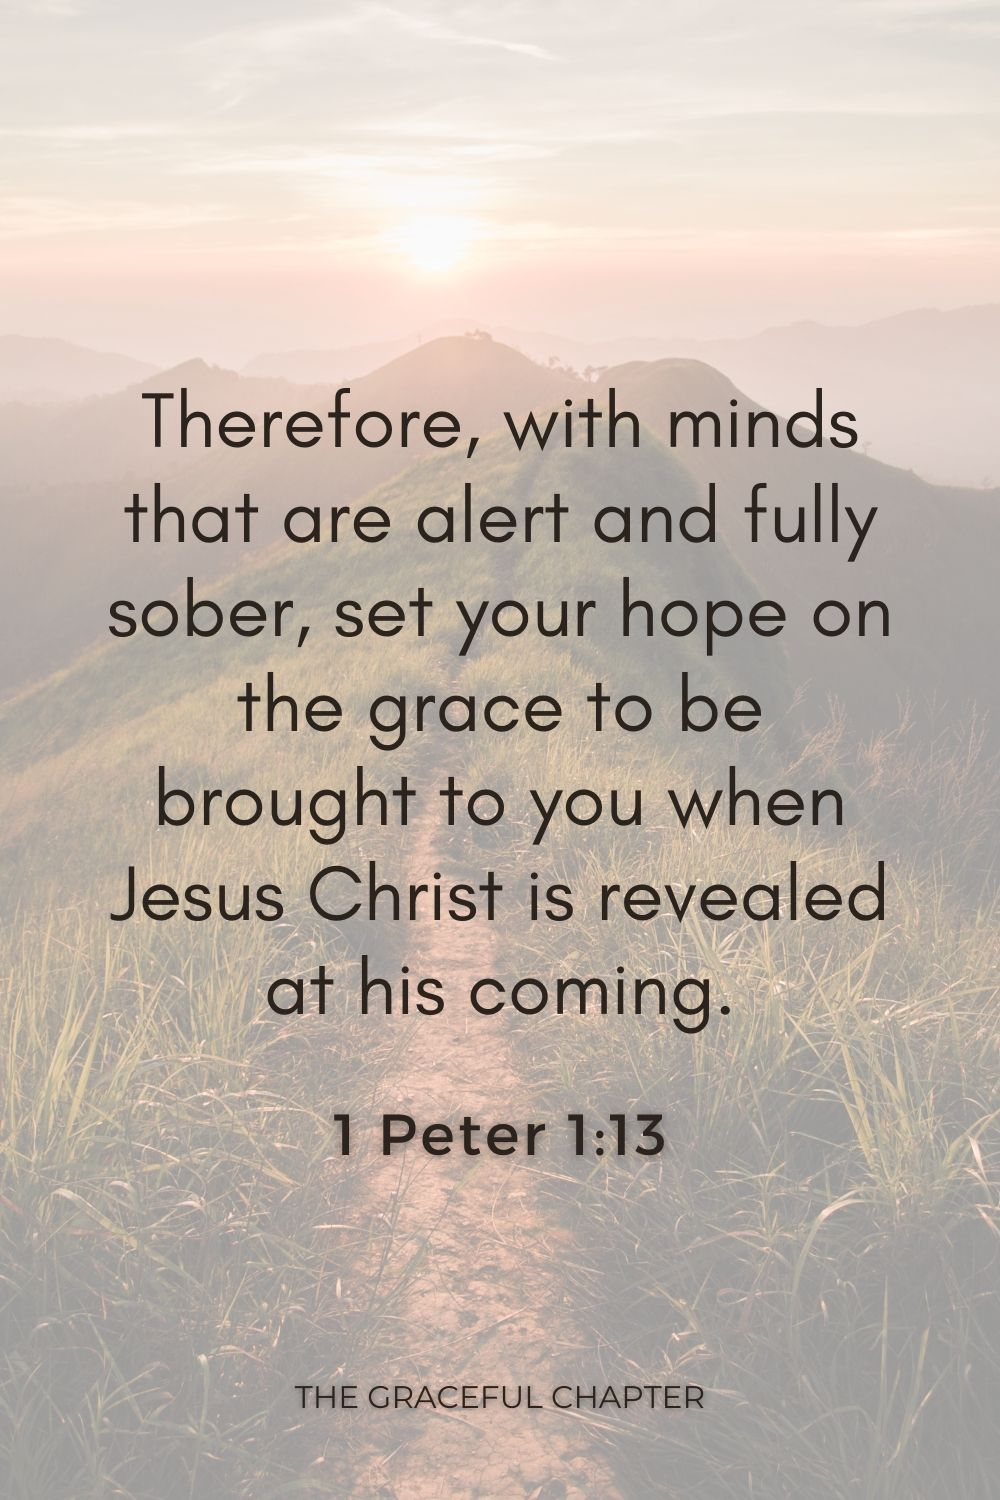 Therefore, with minds that are alert and fully sober, set your hope on the grace to be brought to you when Jesus Christ is revealed at his coming. 1 Peter 1:13